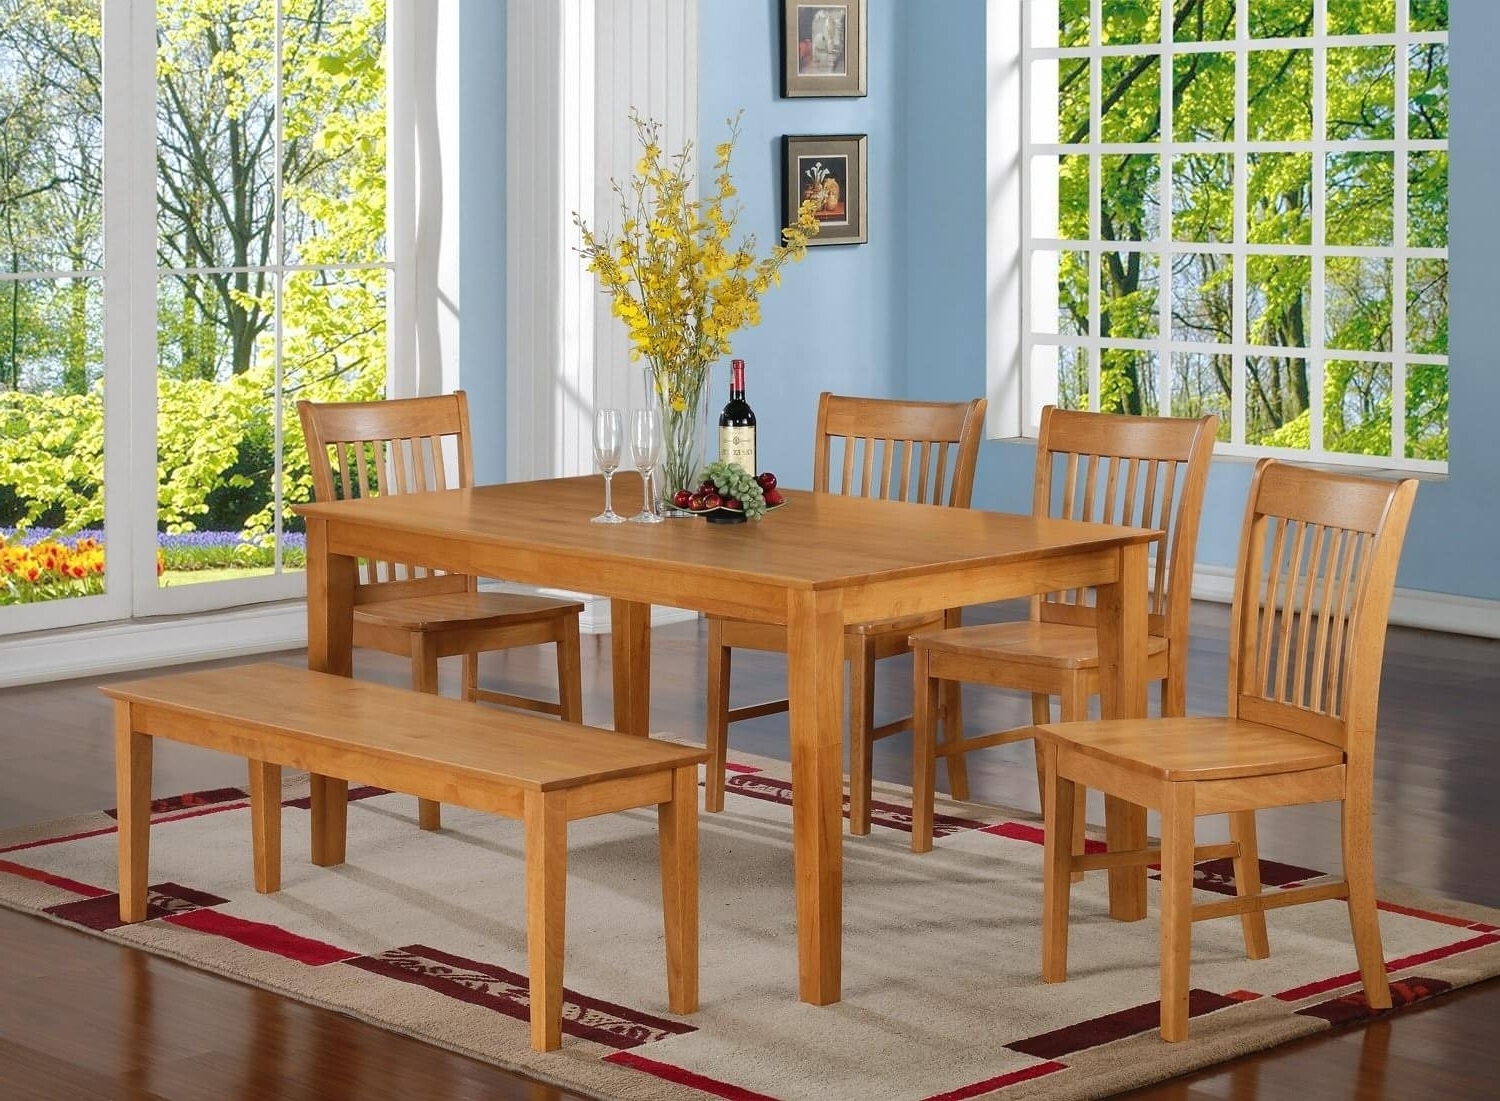 Most Popular 26 Dining Room Sets (Big And Small) With Bench Seating (2018) Regarding Indoor Picnic Style Dining Tables (View 4 of 25)